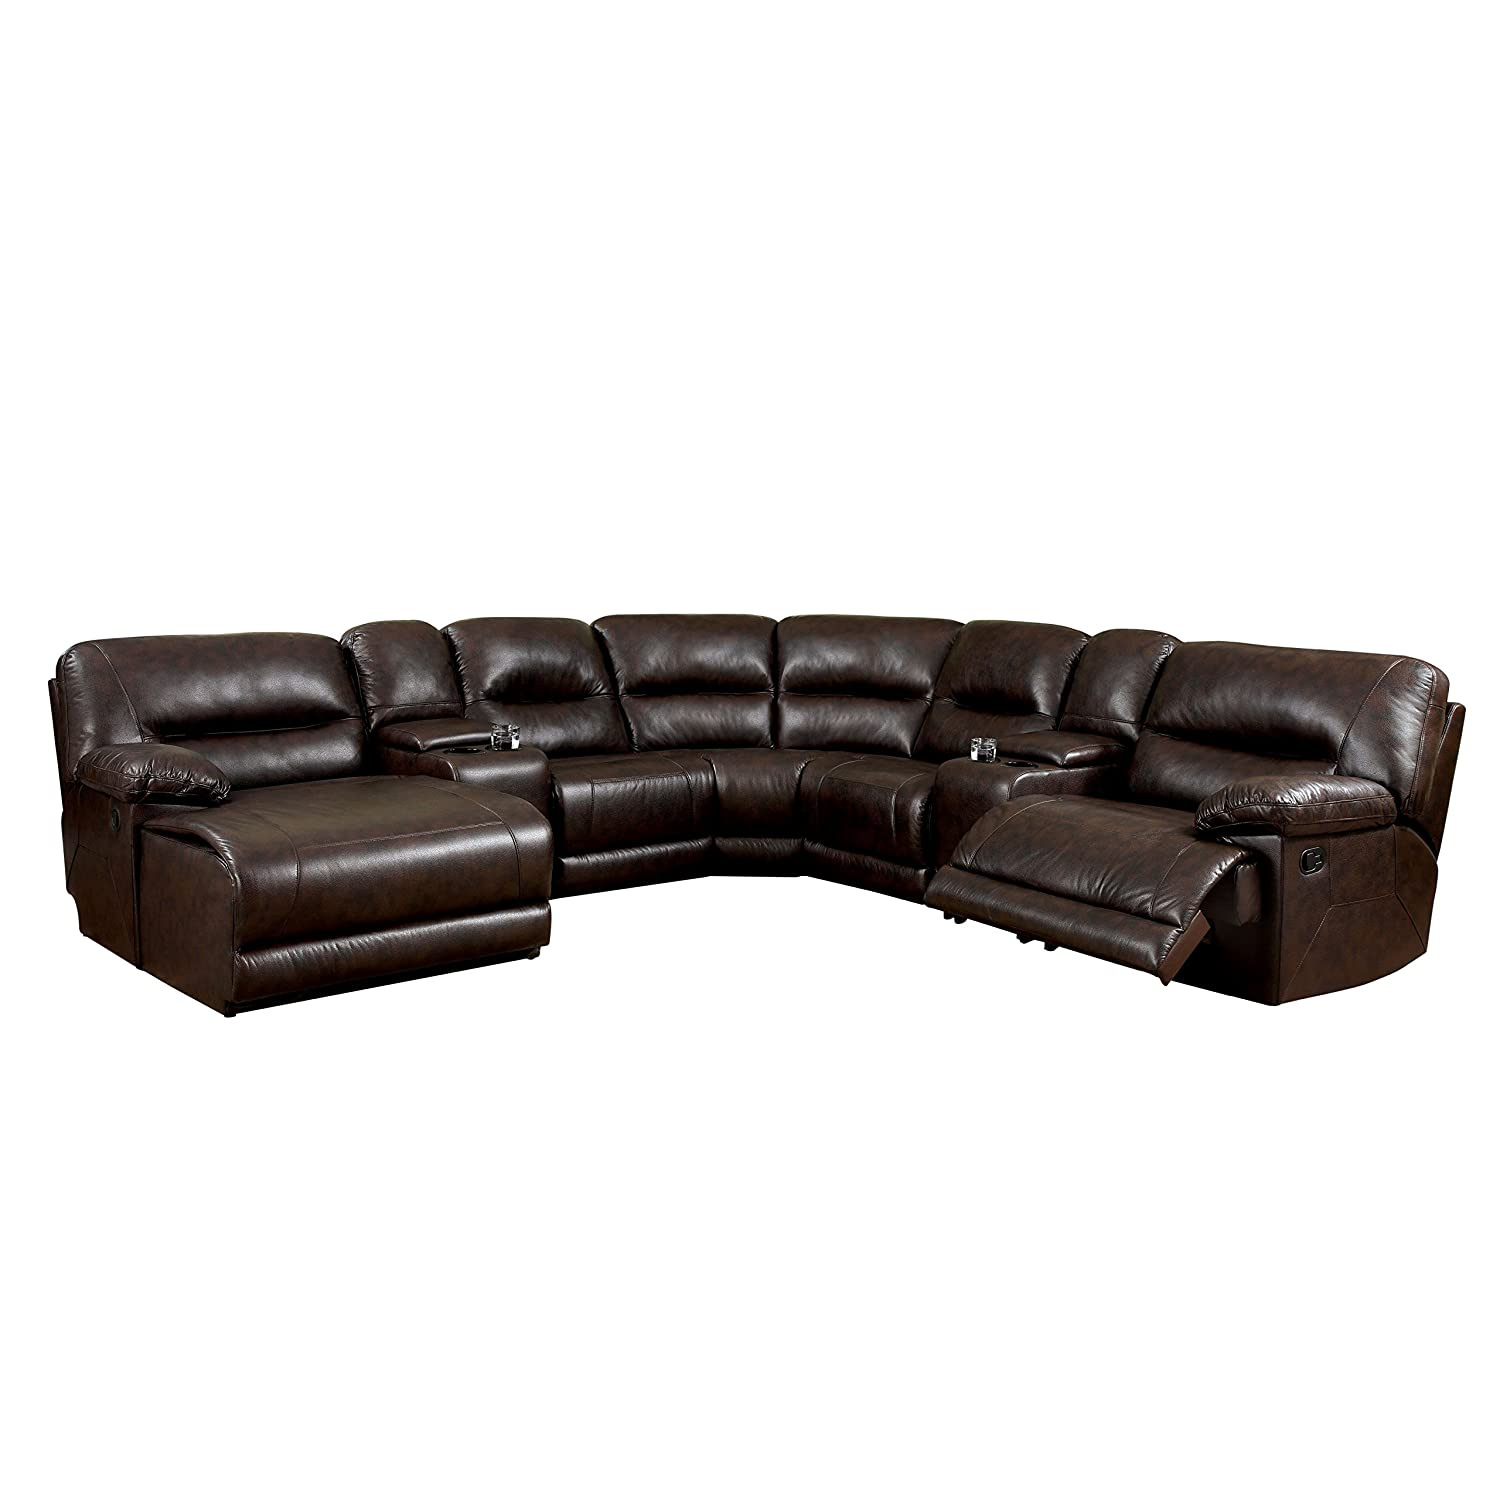 Amazon Furniture of America Griffith Corner Sectional Sofa